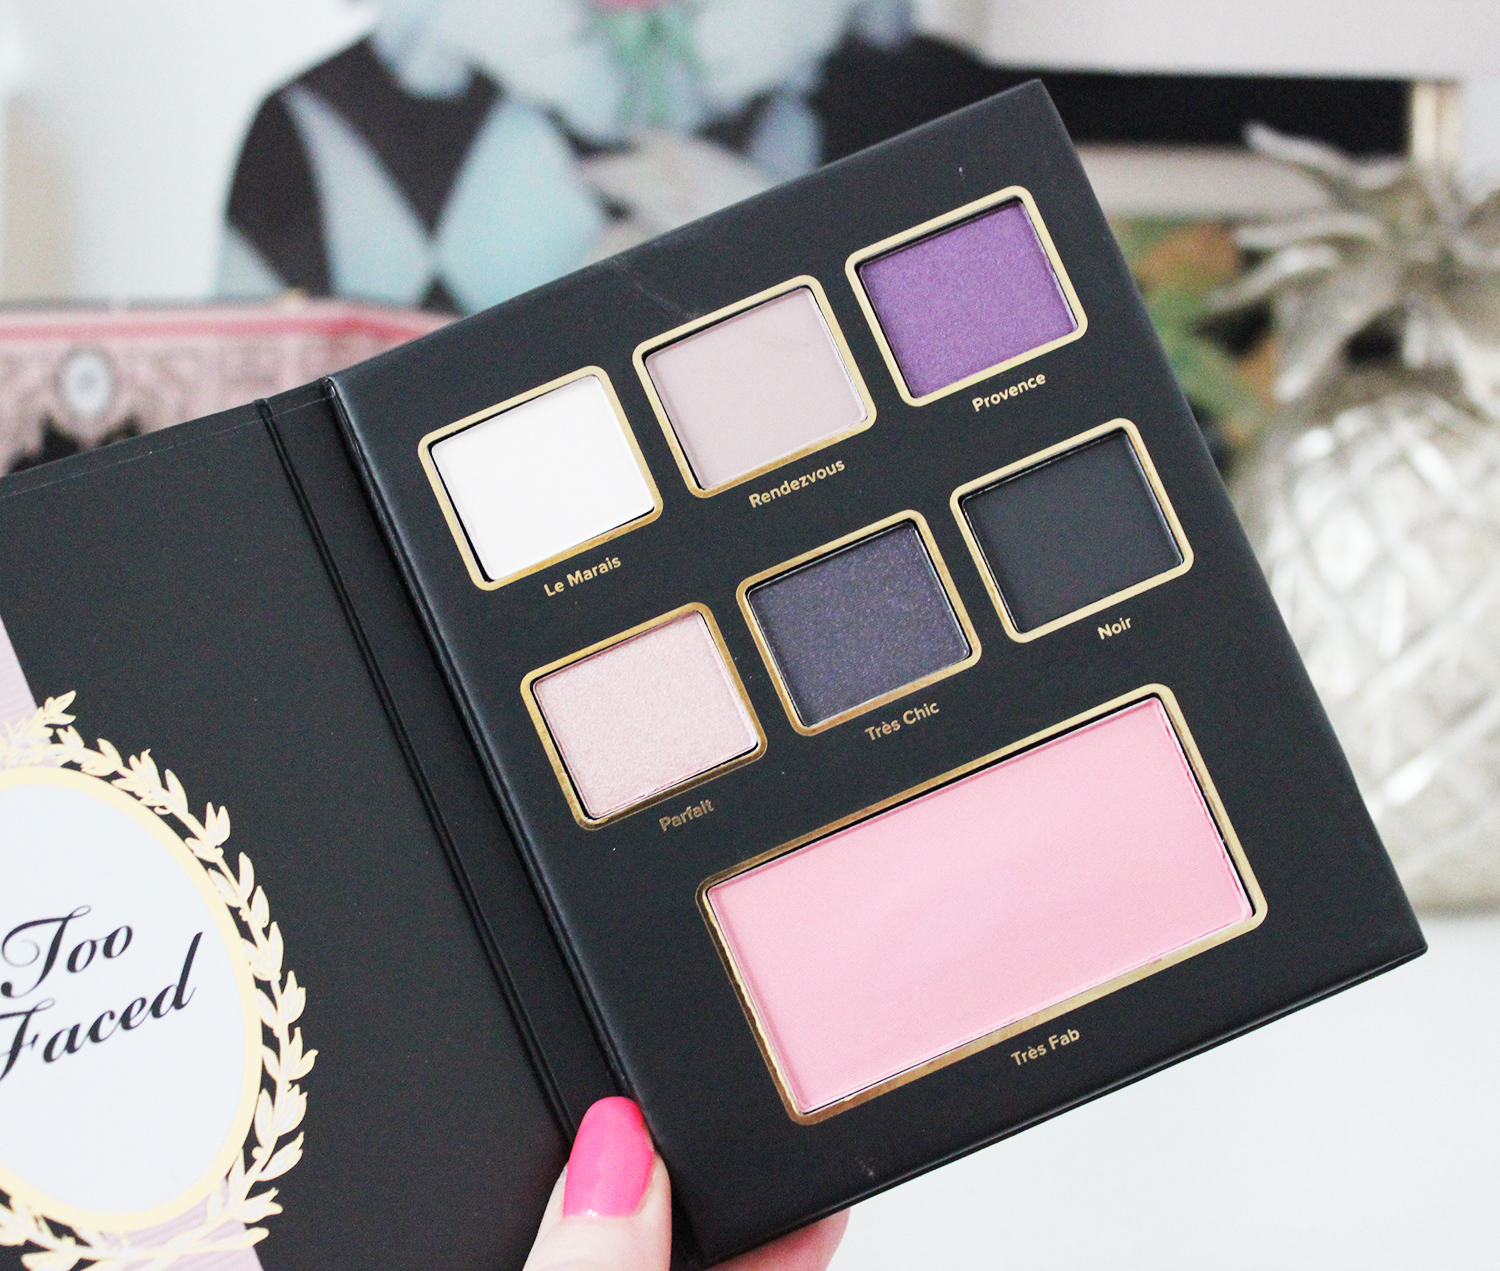 Too Faced Le Grand Chateau holiday palette review